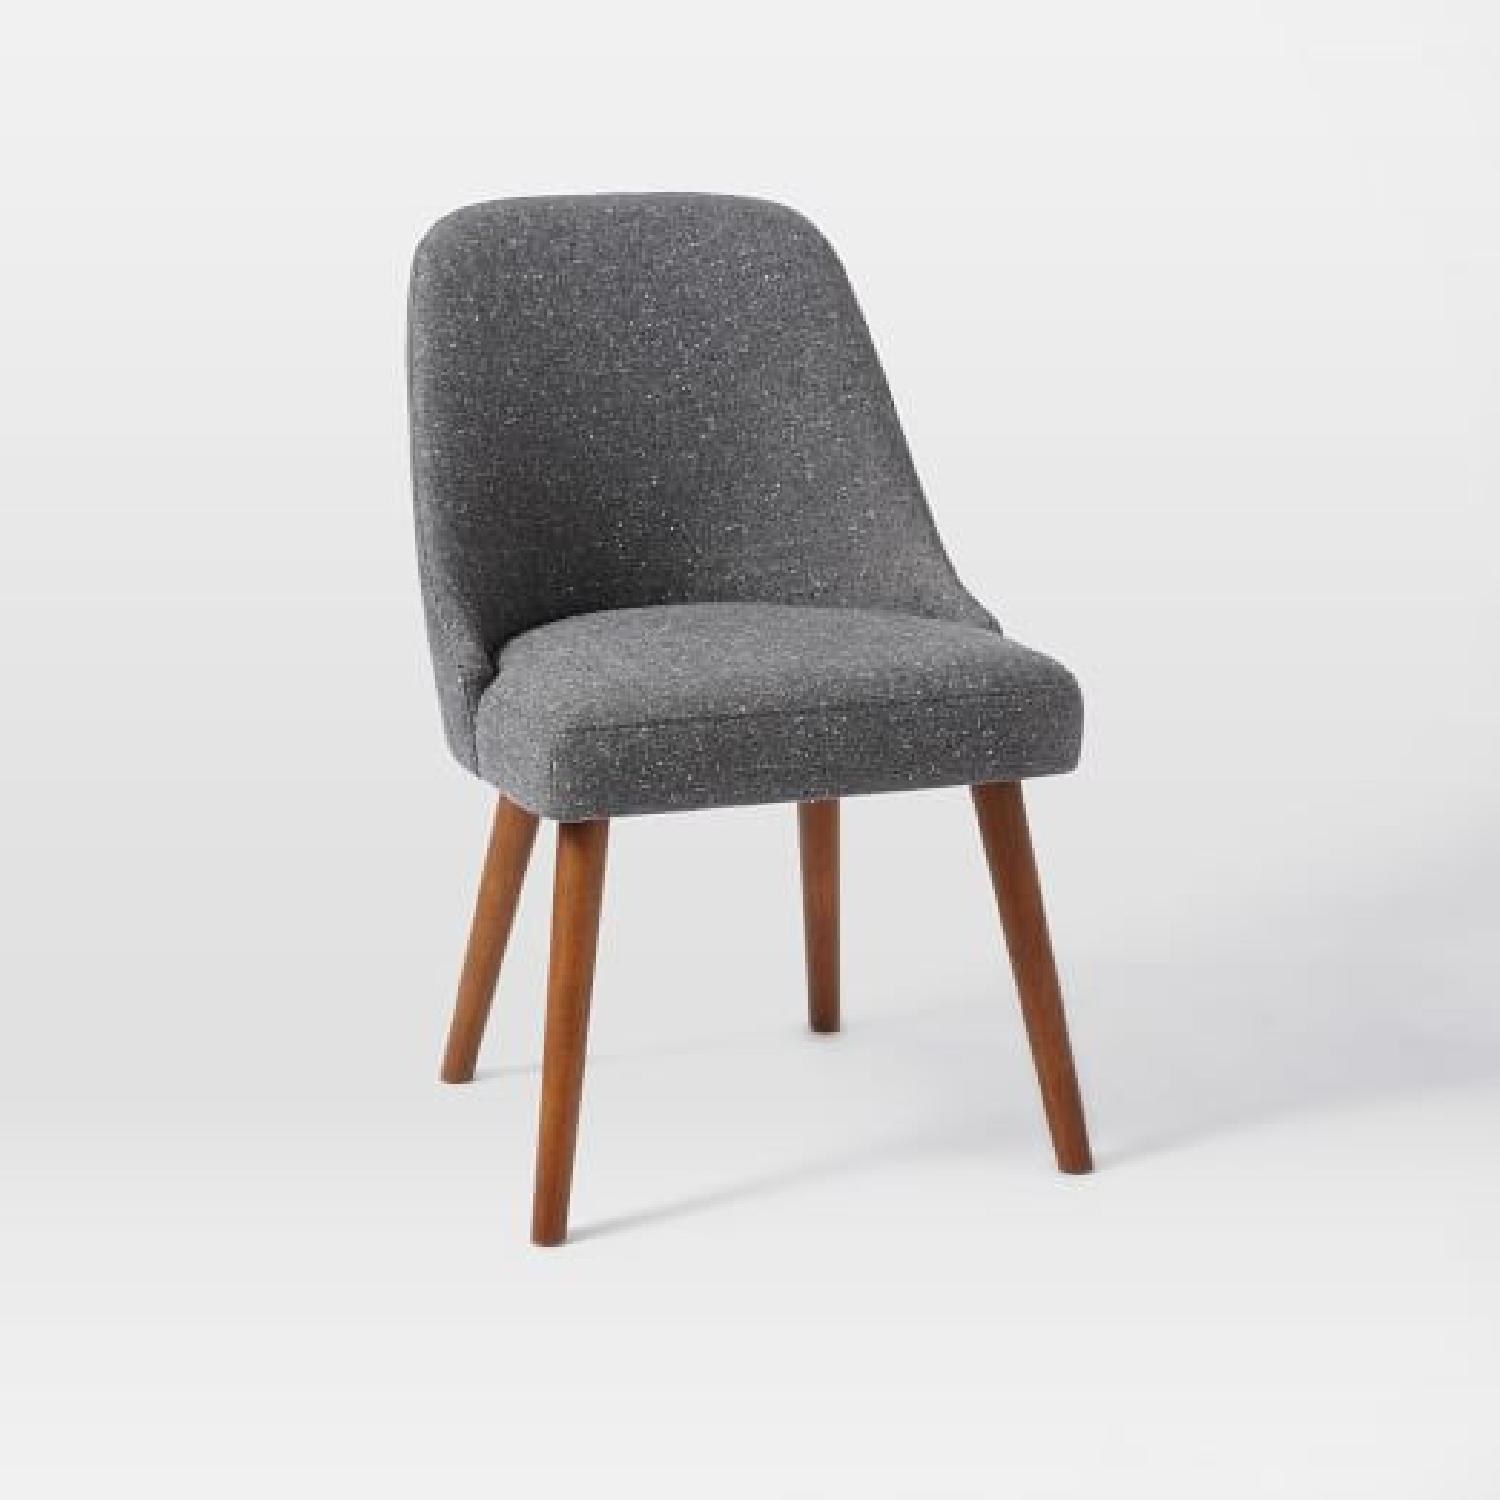 West Elm Upholstered Dining/Accent Chairs - image-0